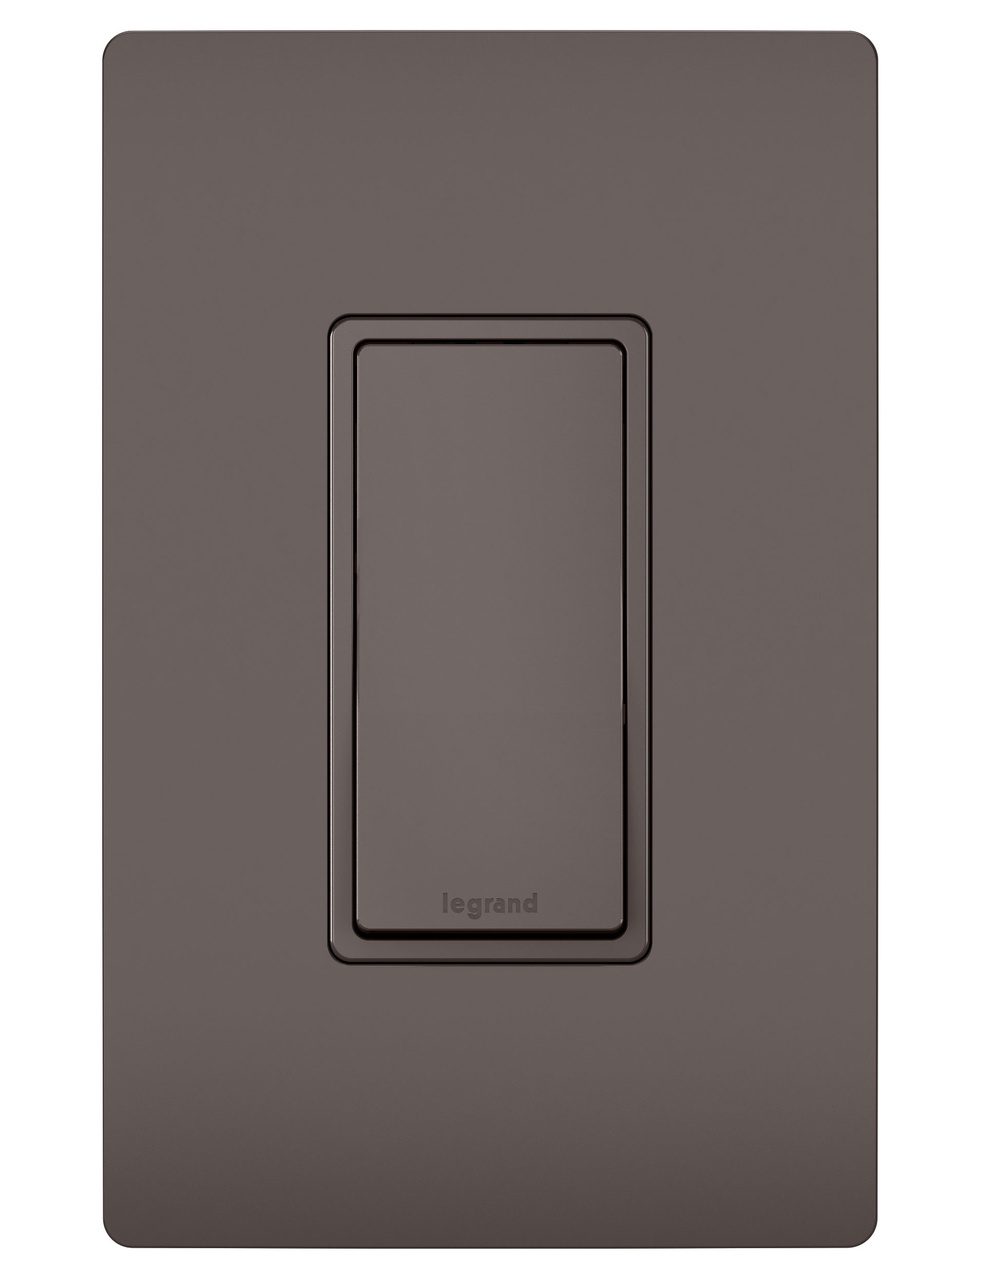 15A Self-Grounding Single Pole Switch, Brown